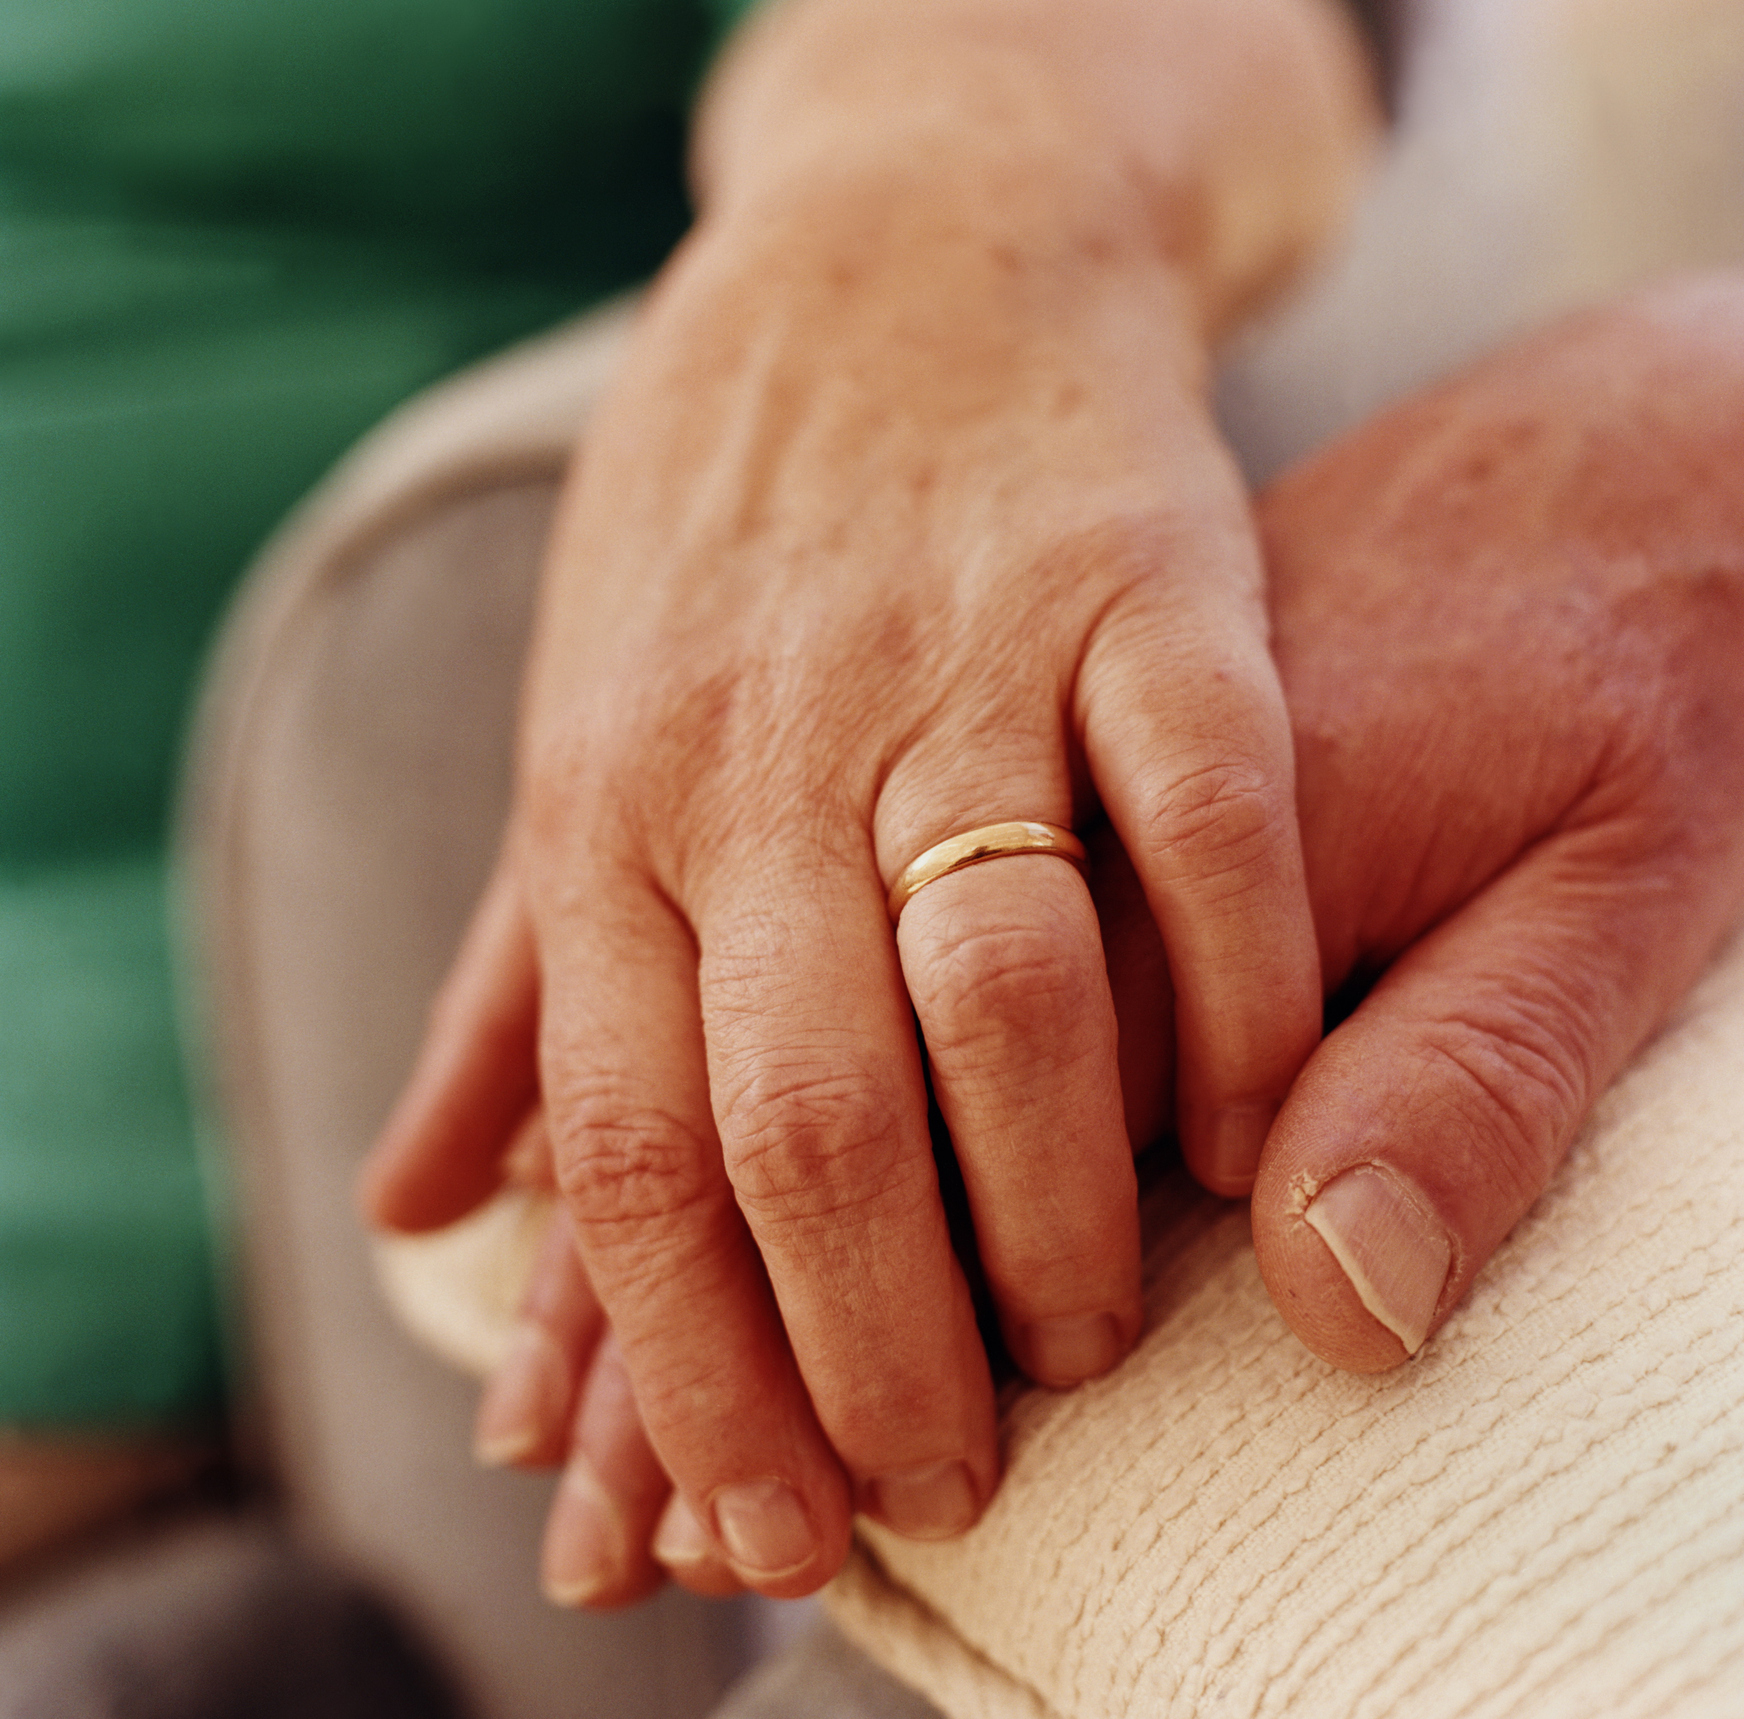 Mature couple's hands, c